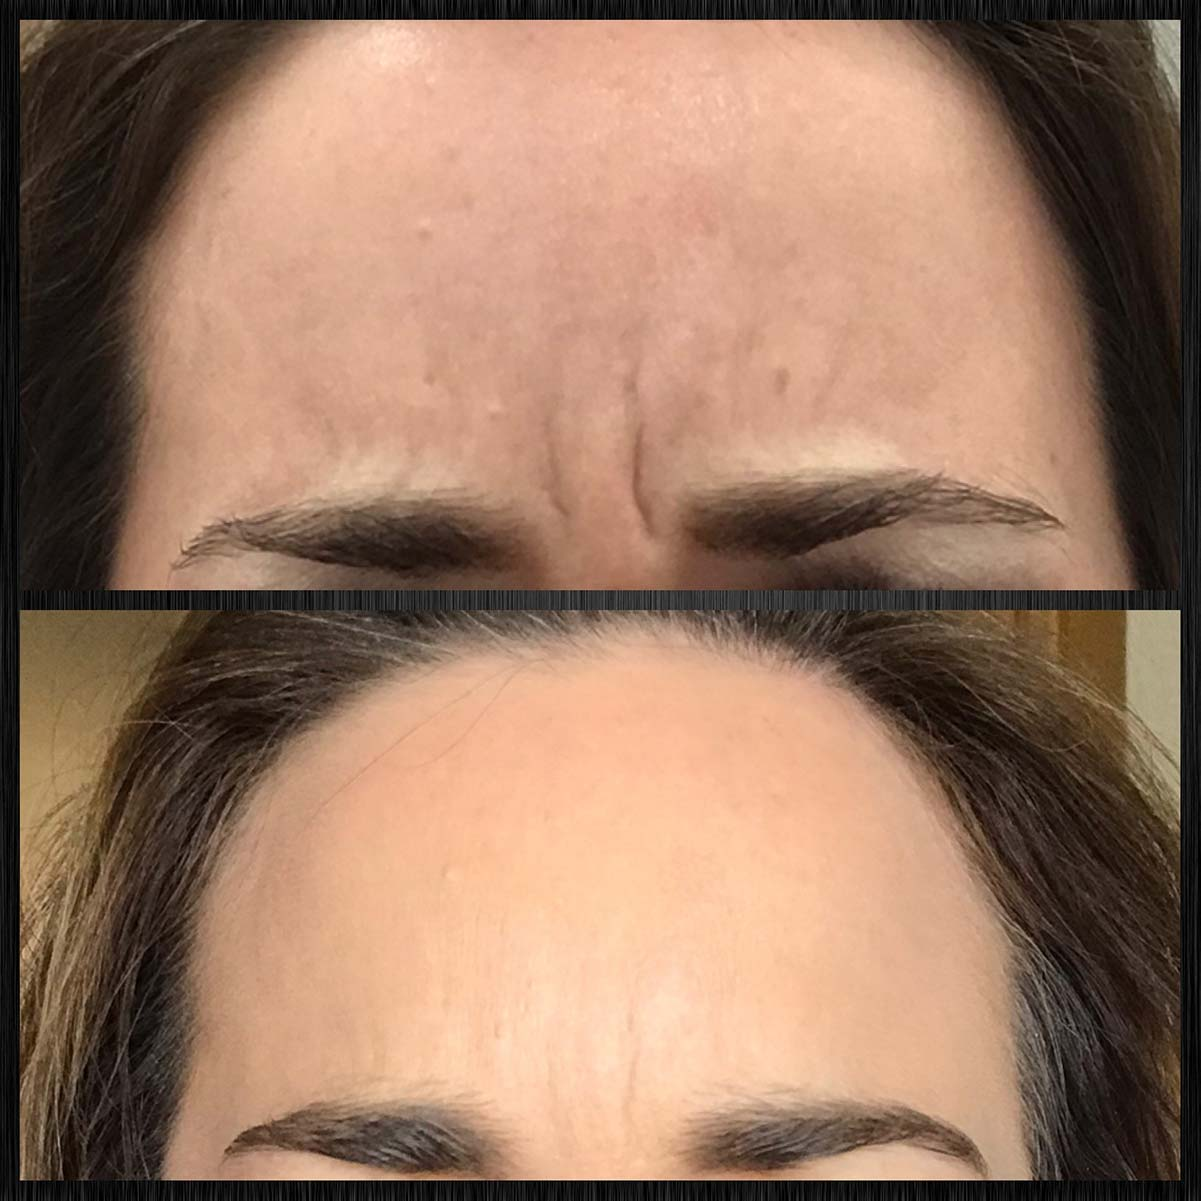 Botox treatment for frown lines (11s) between eyebrows.